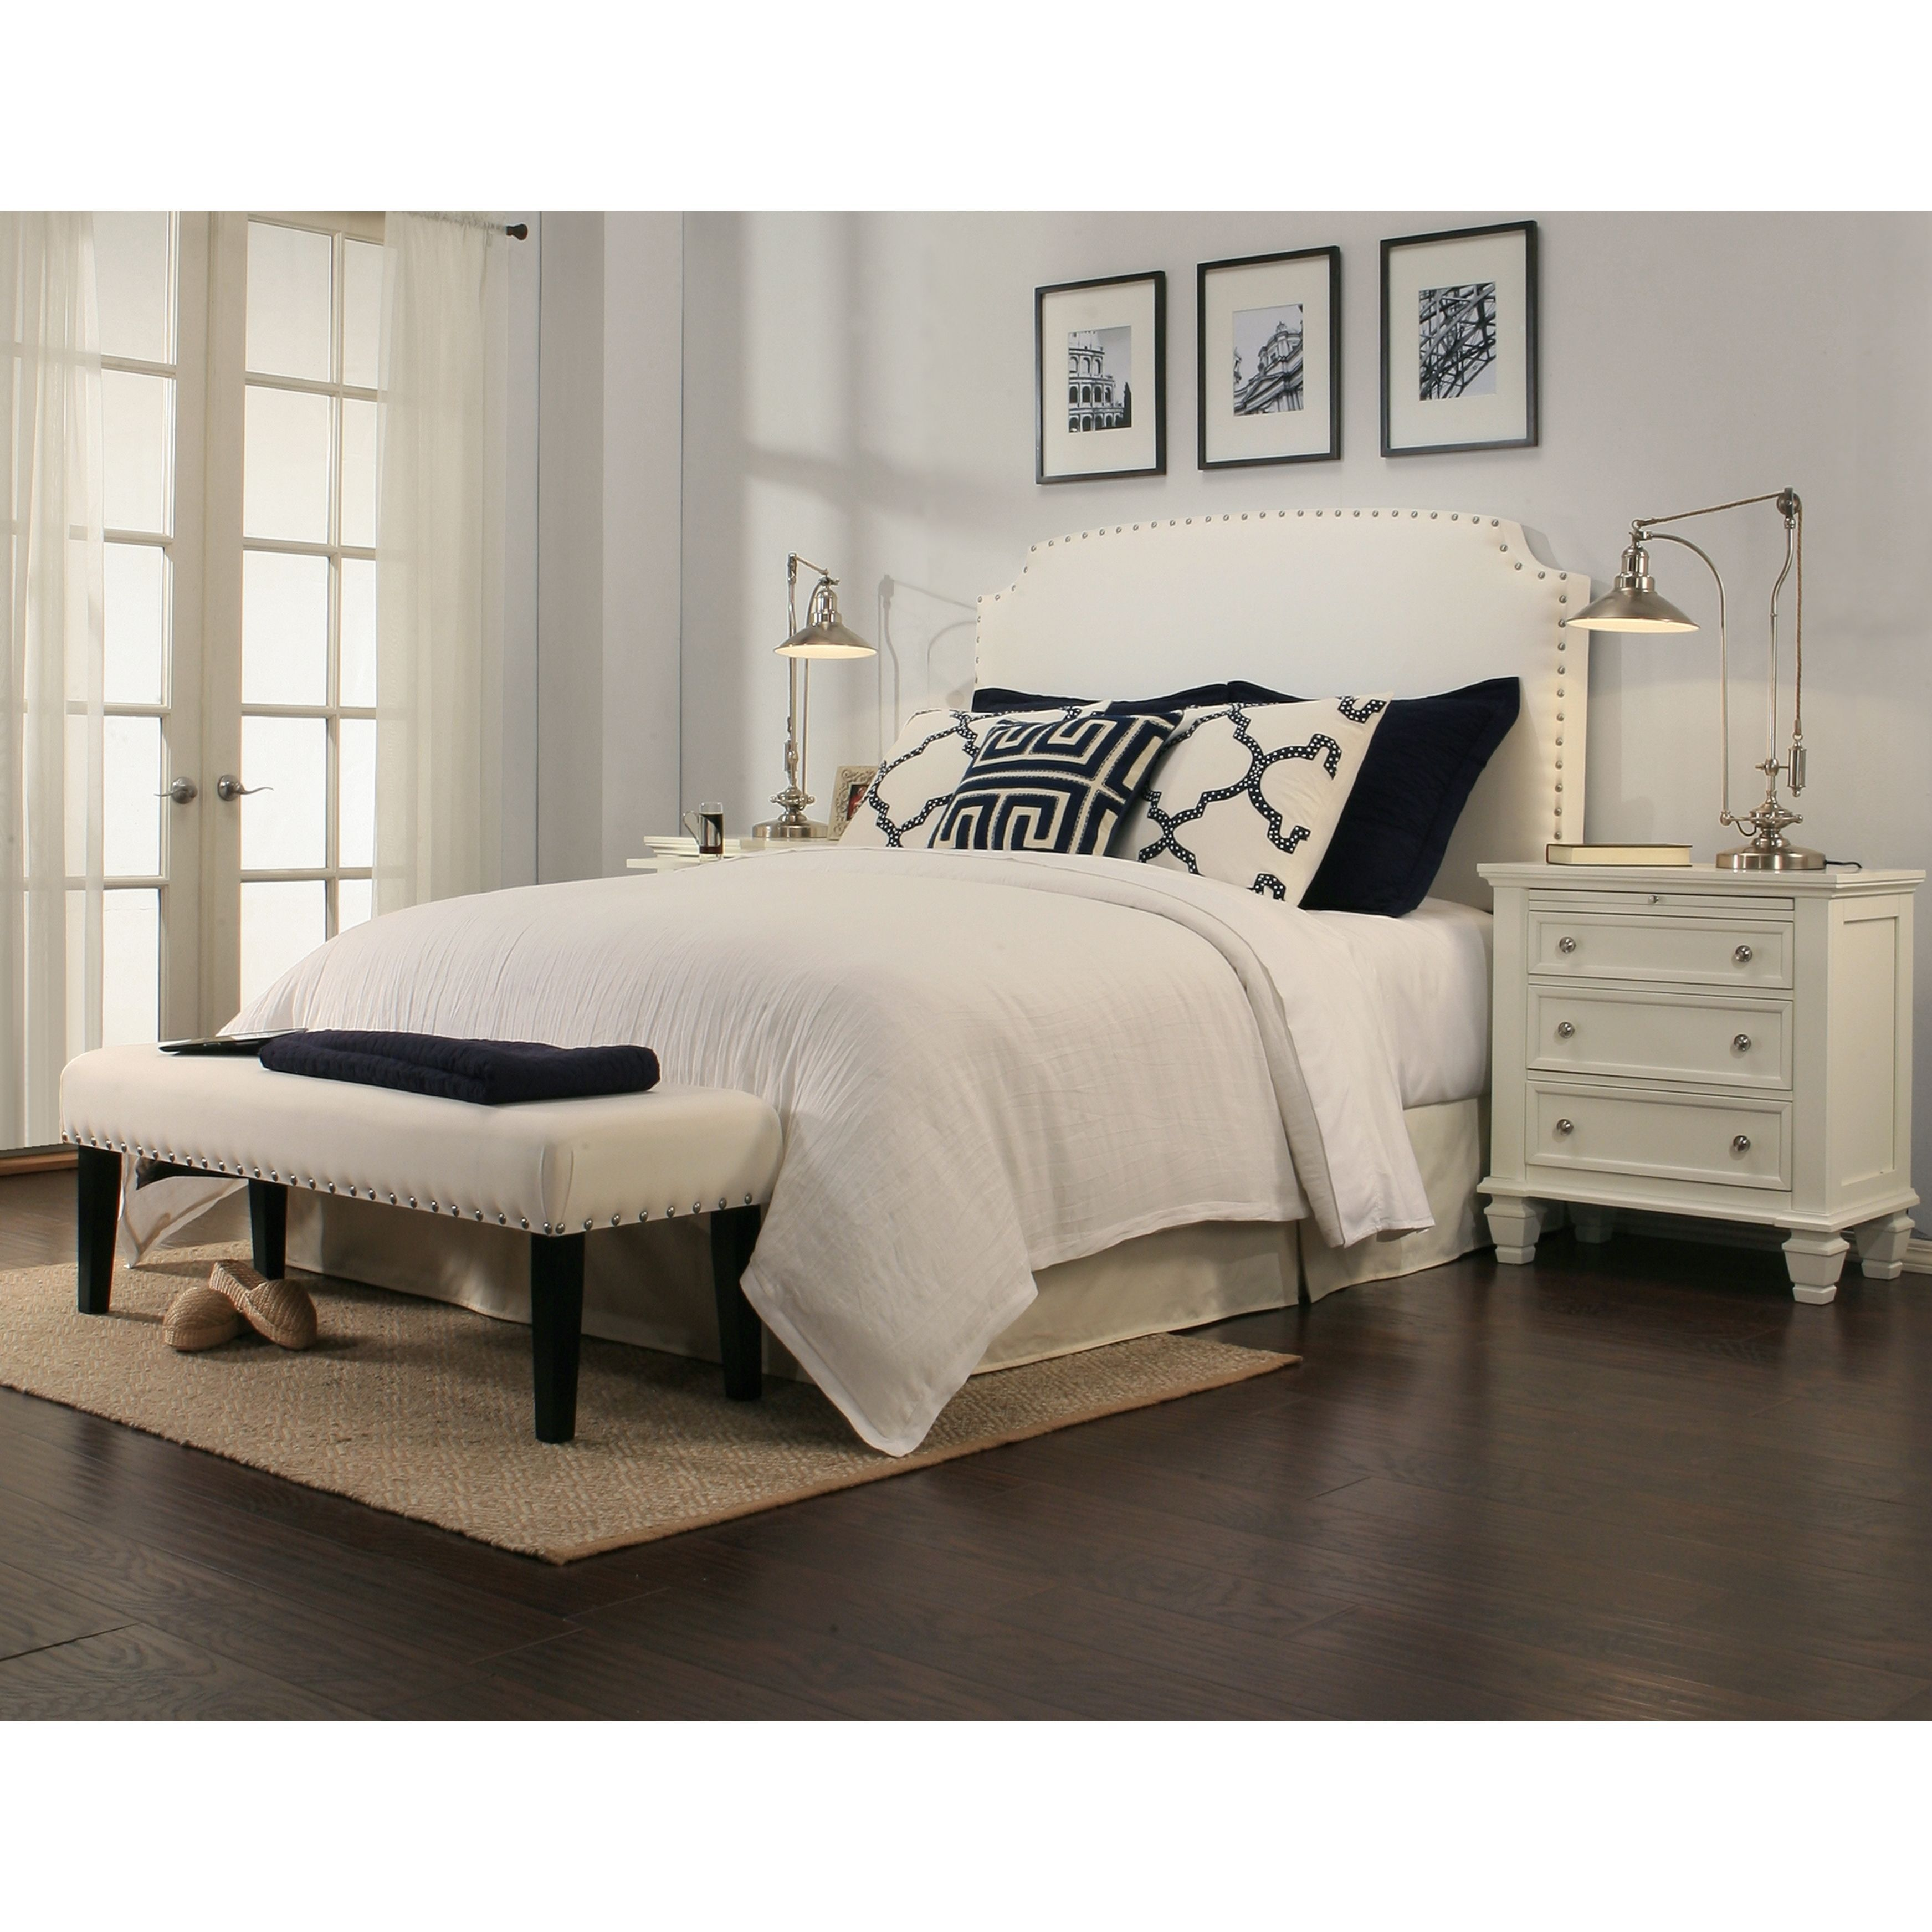 Bedroom Bench For King Size Bed Bedroom Furniture Qld Bedroom Art Prints Bookshelves For Kids Bedroom: The Grosvenor White Headboard / Bench Collection With The